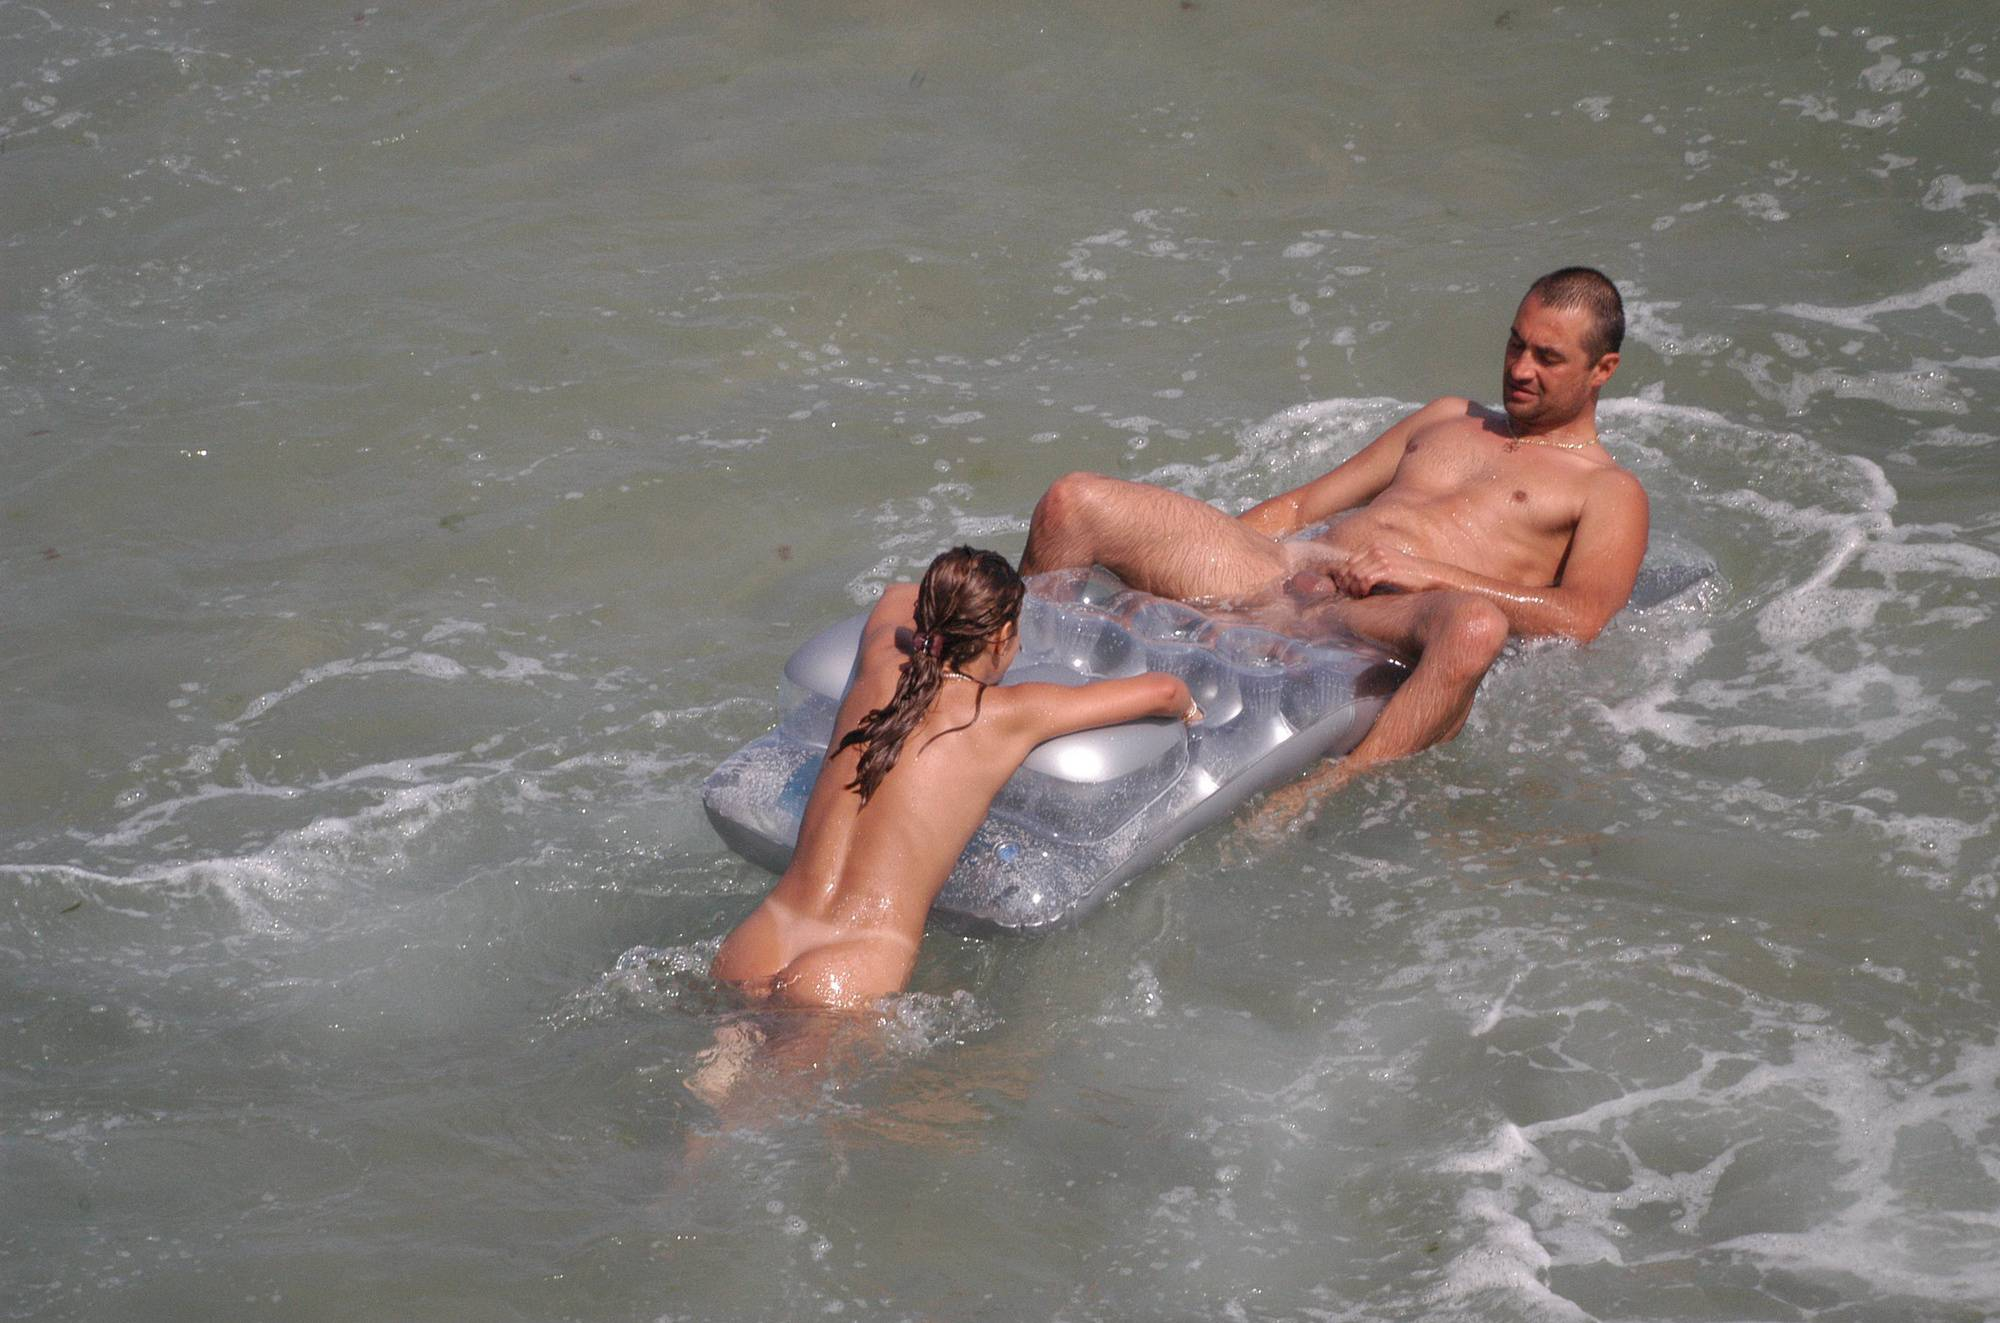 Nudist Pictures Verna Floatable Fun Couple - 1